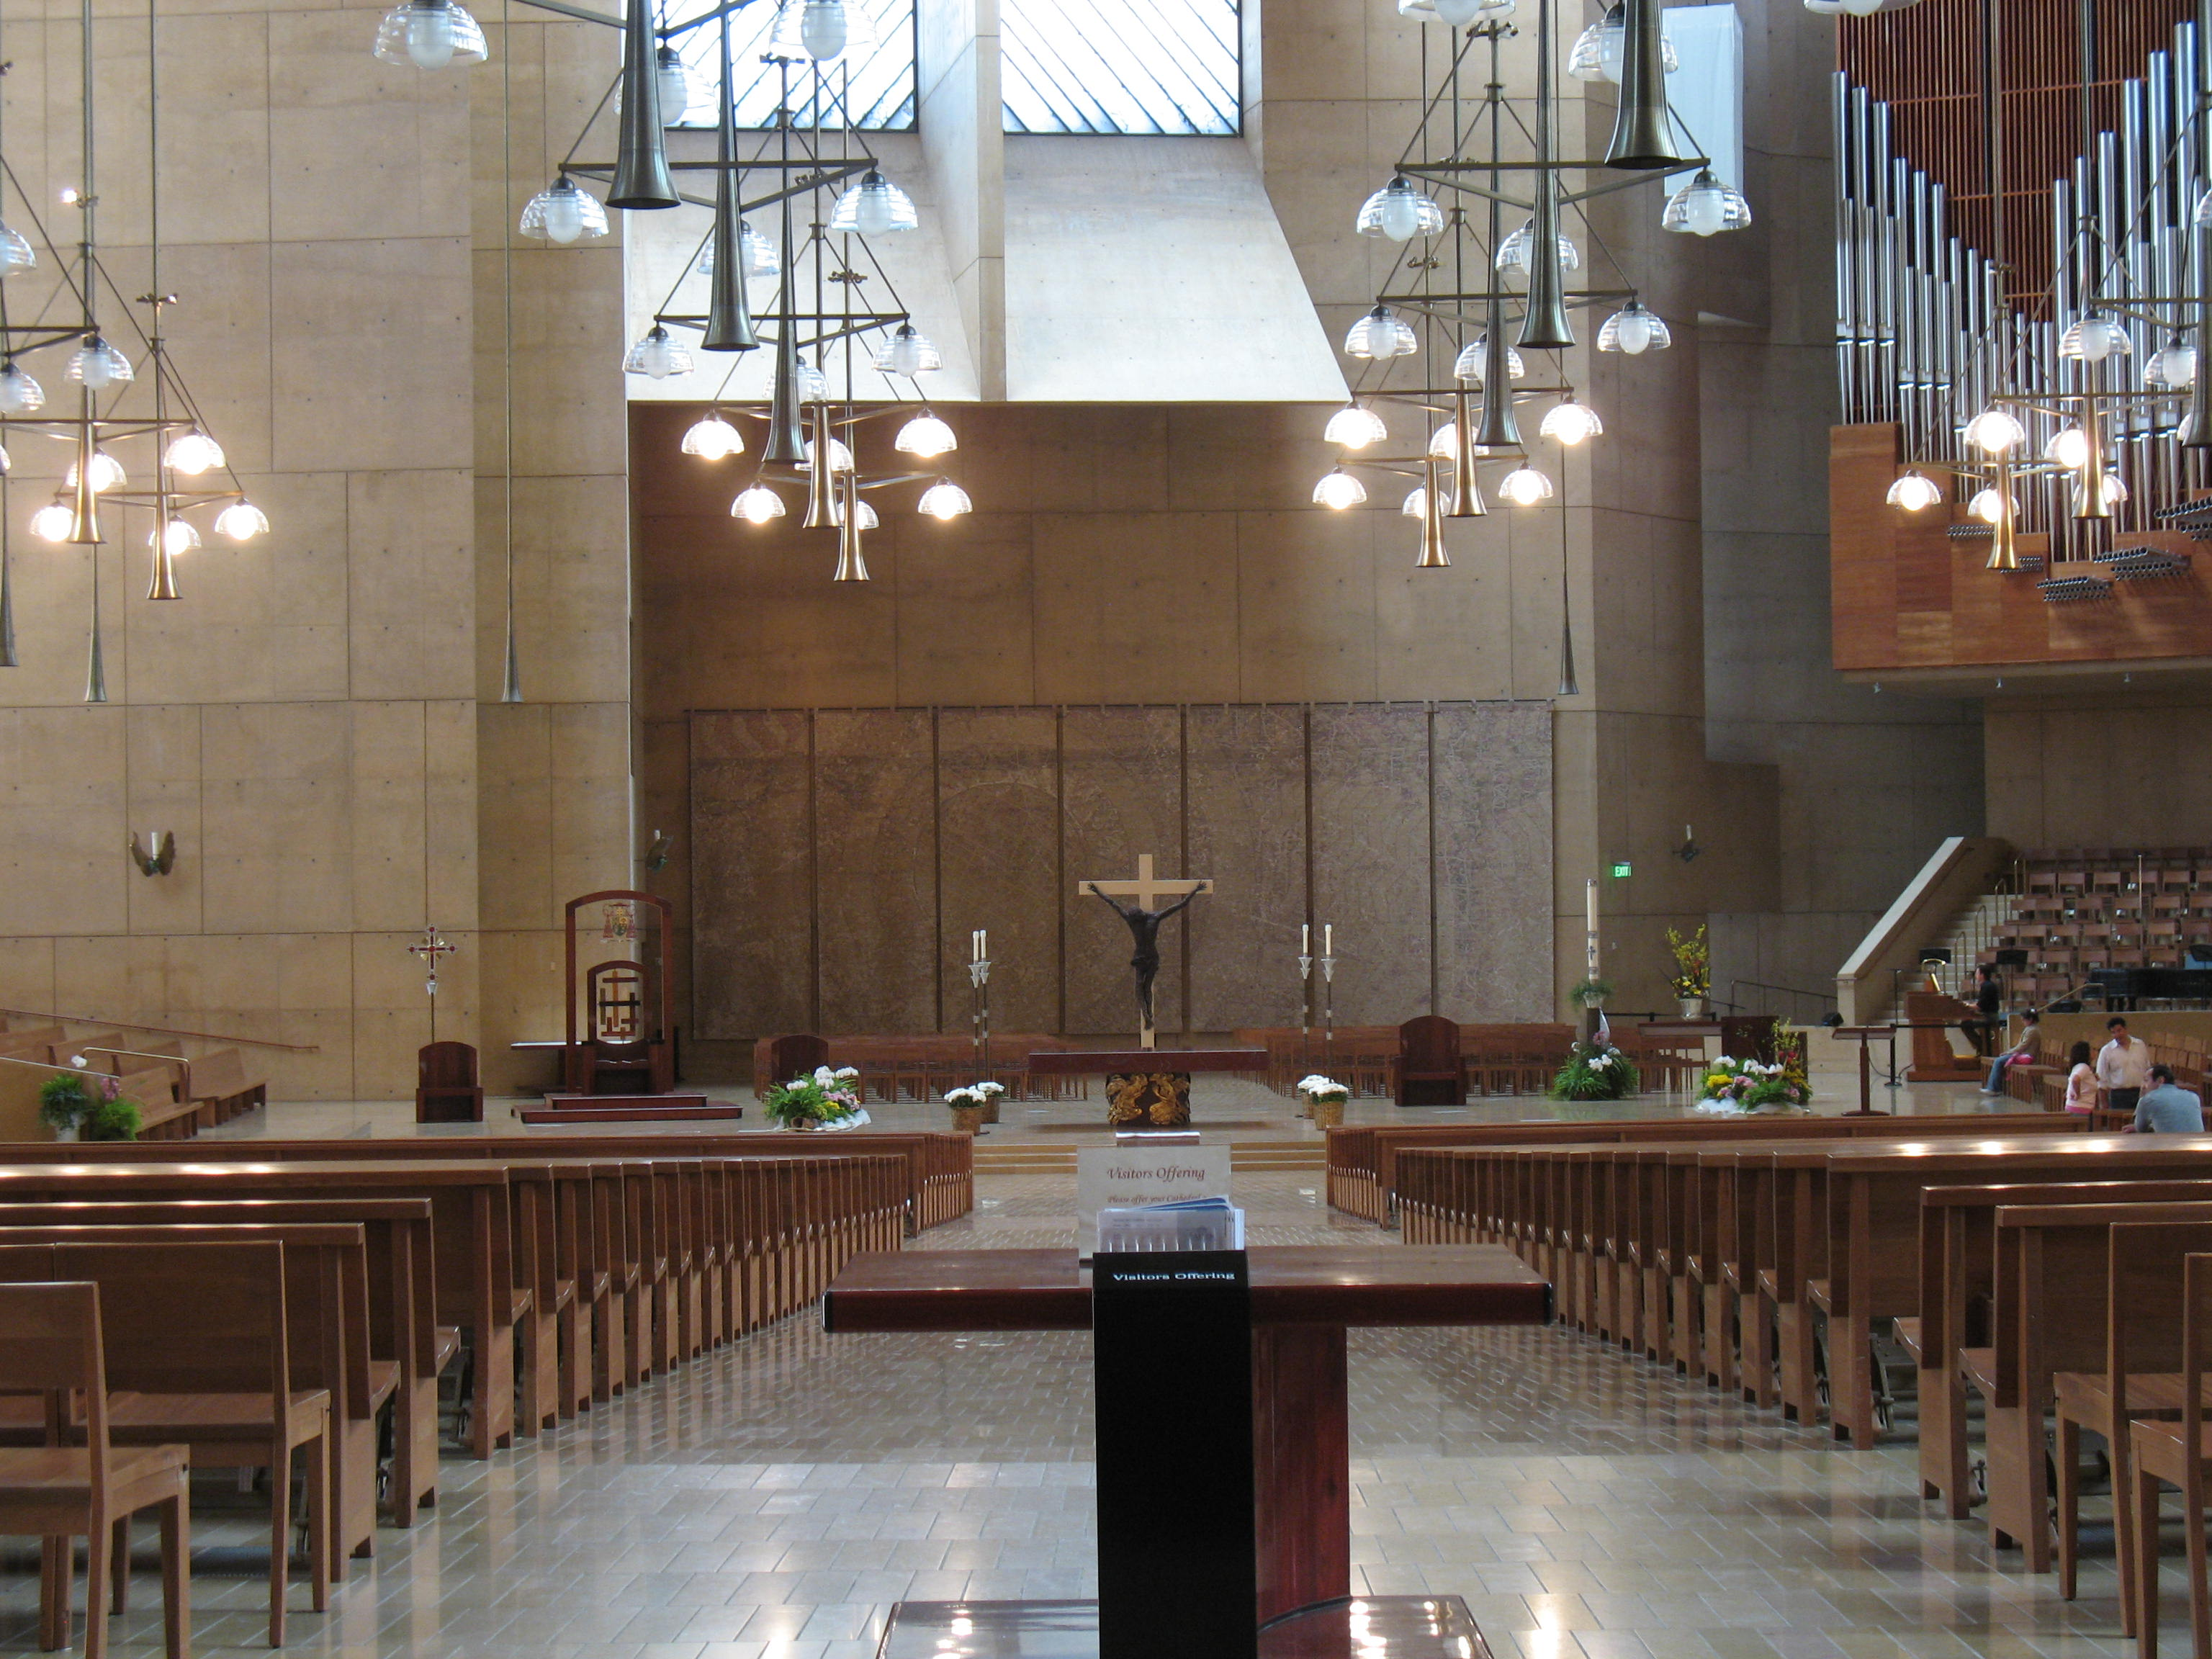 file our lady of the angels   interior jpg   wikimedia commons